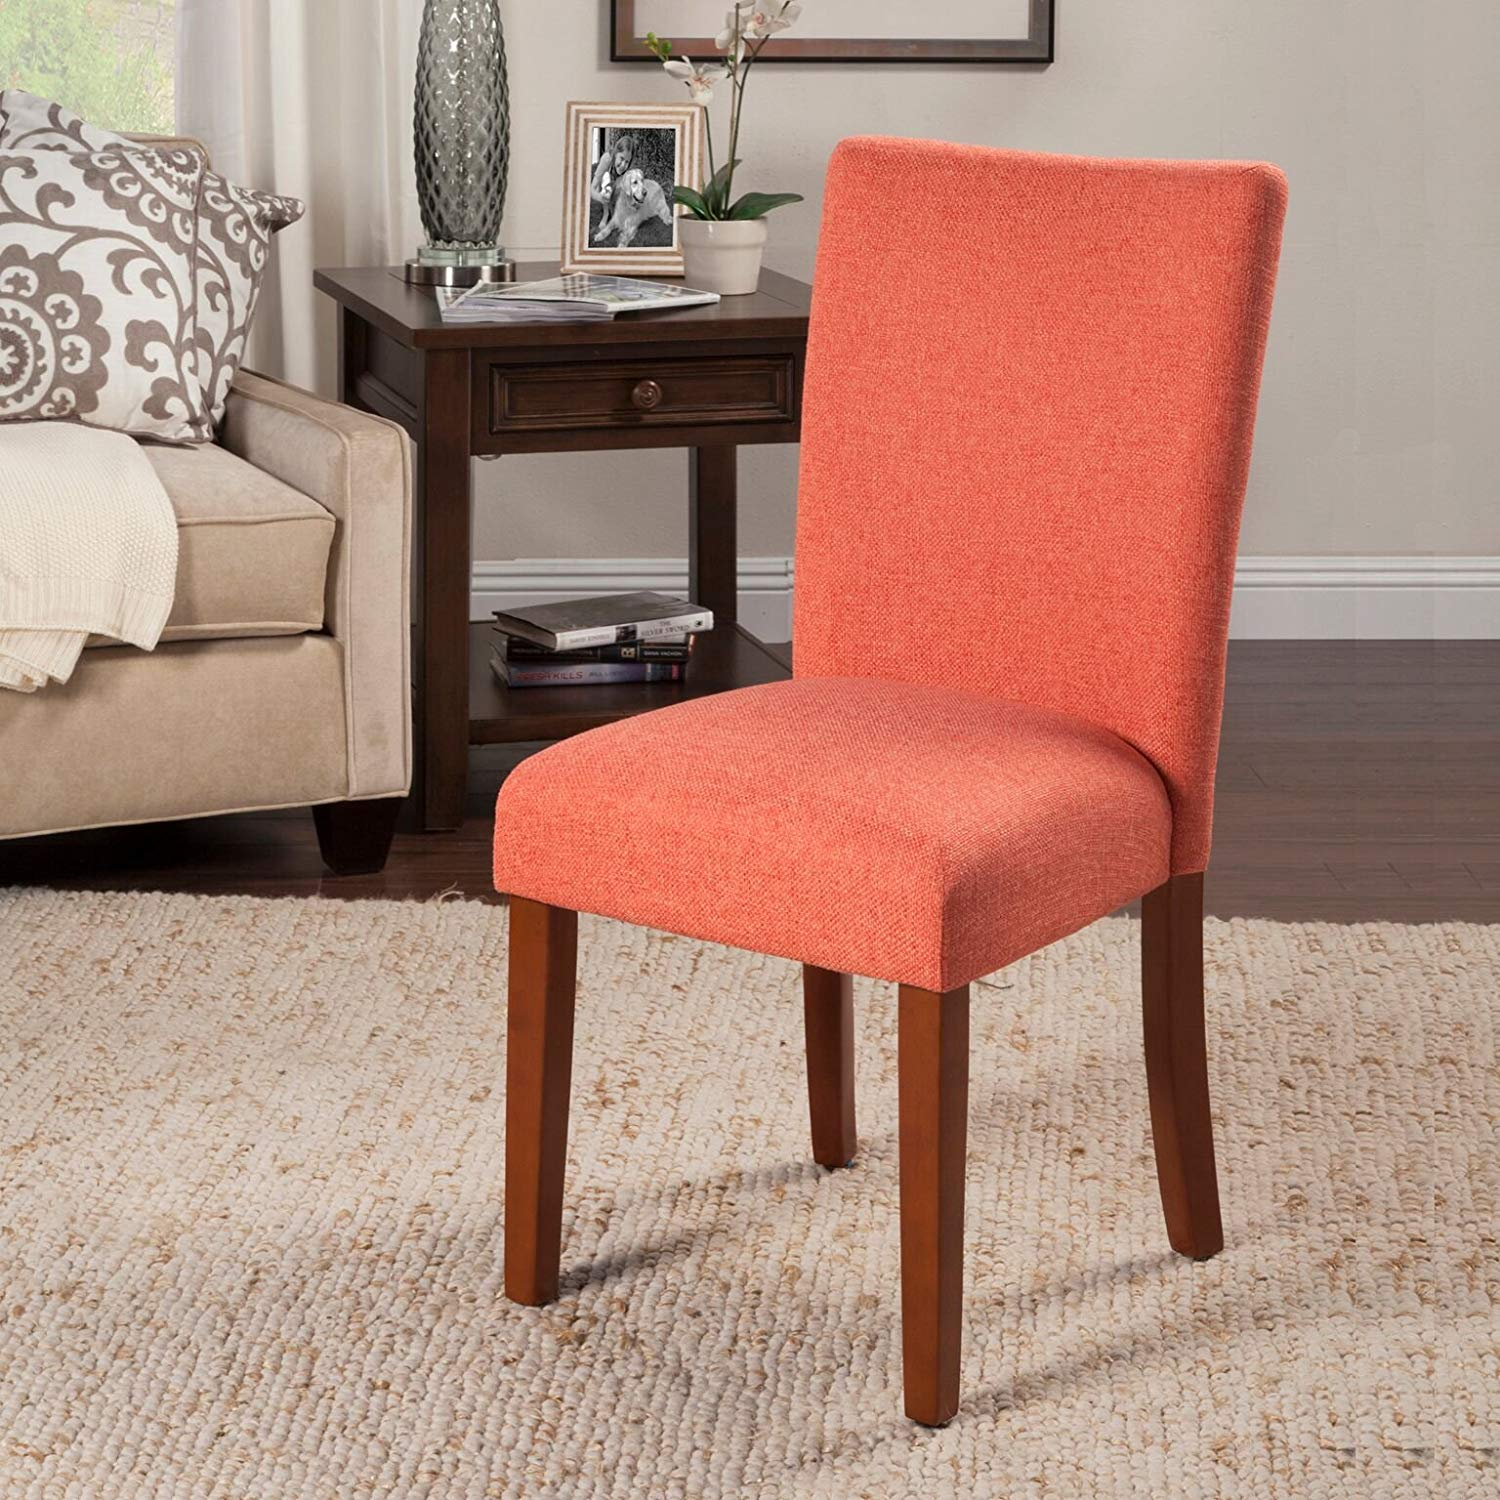 Coral Reef Motic Accent Chair: 8 Coral Home Decor Pieces Perfect For Summer